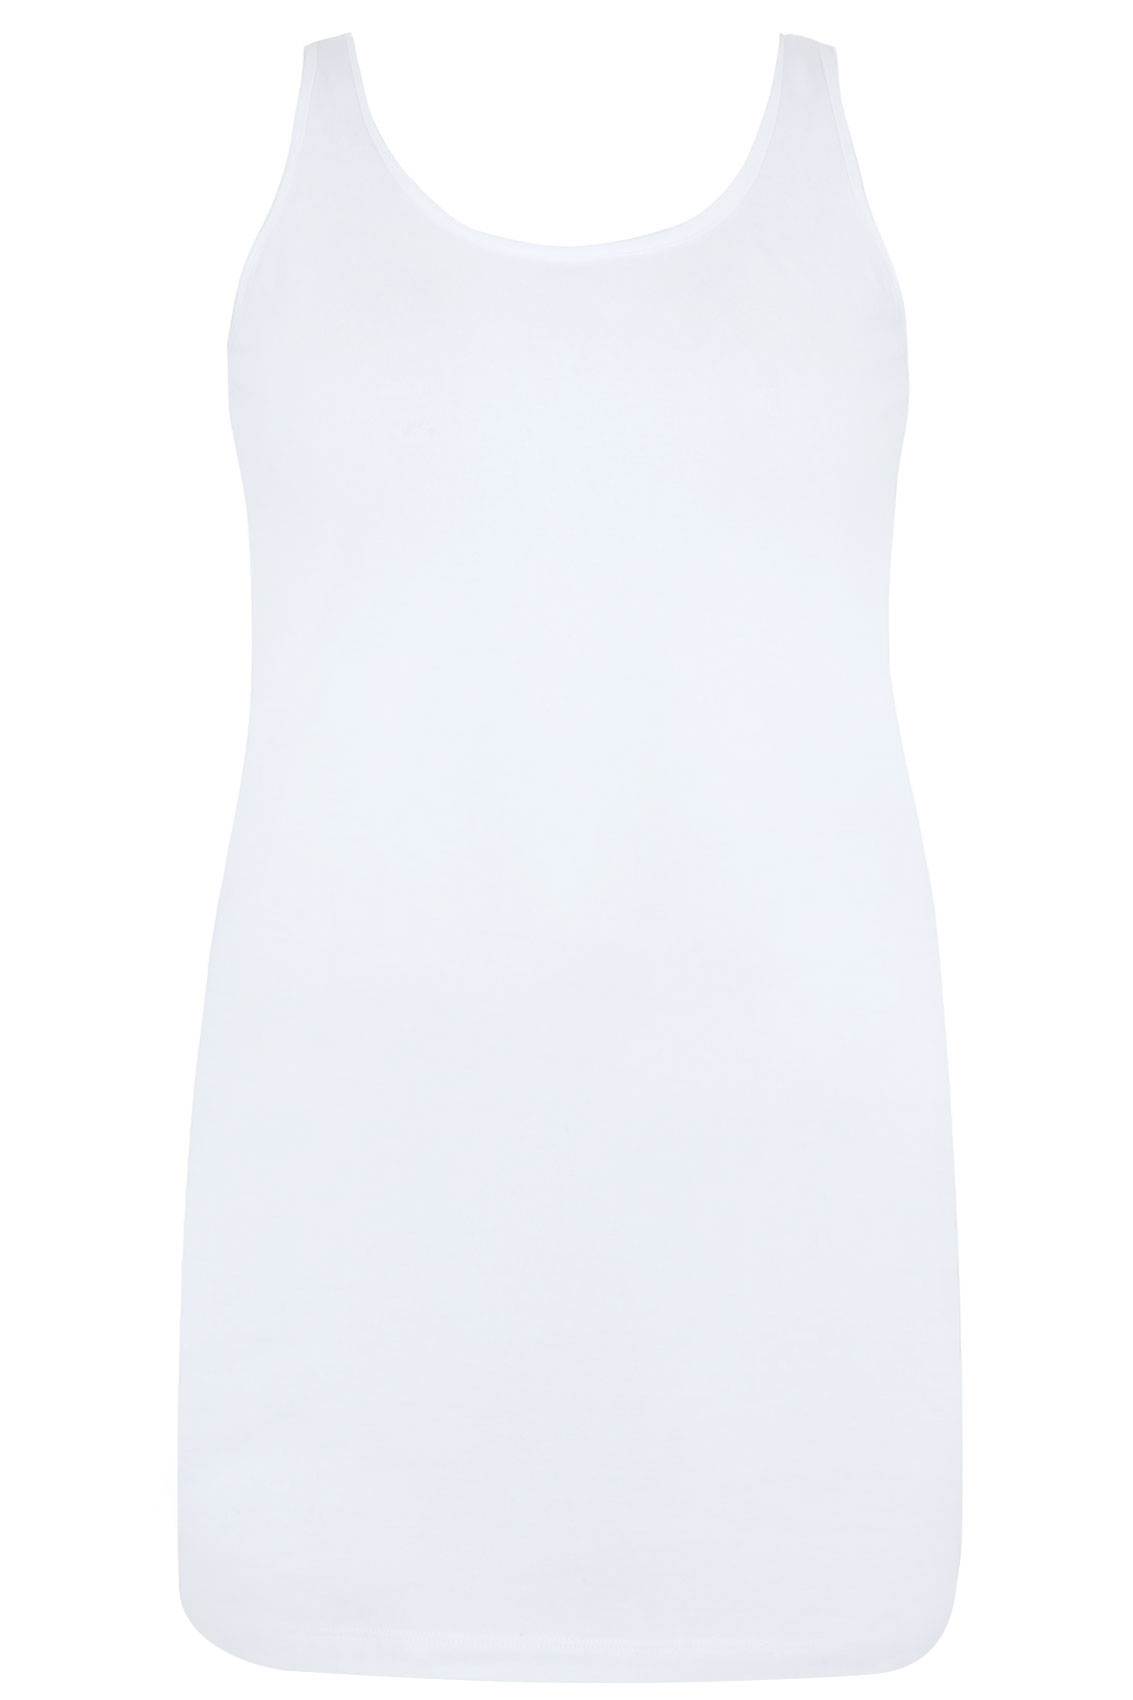 vest top template - white longline vest top plus size 16 to 36